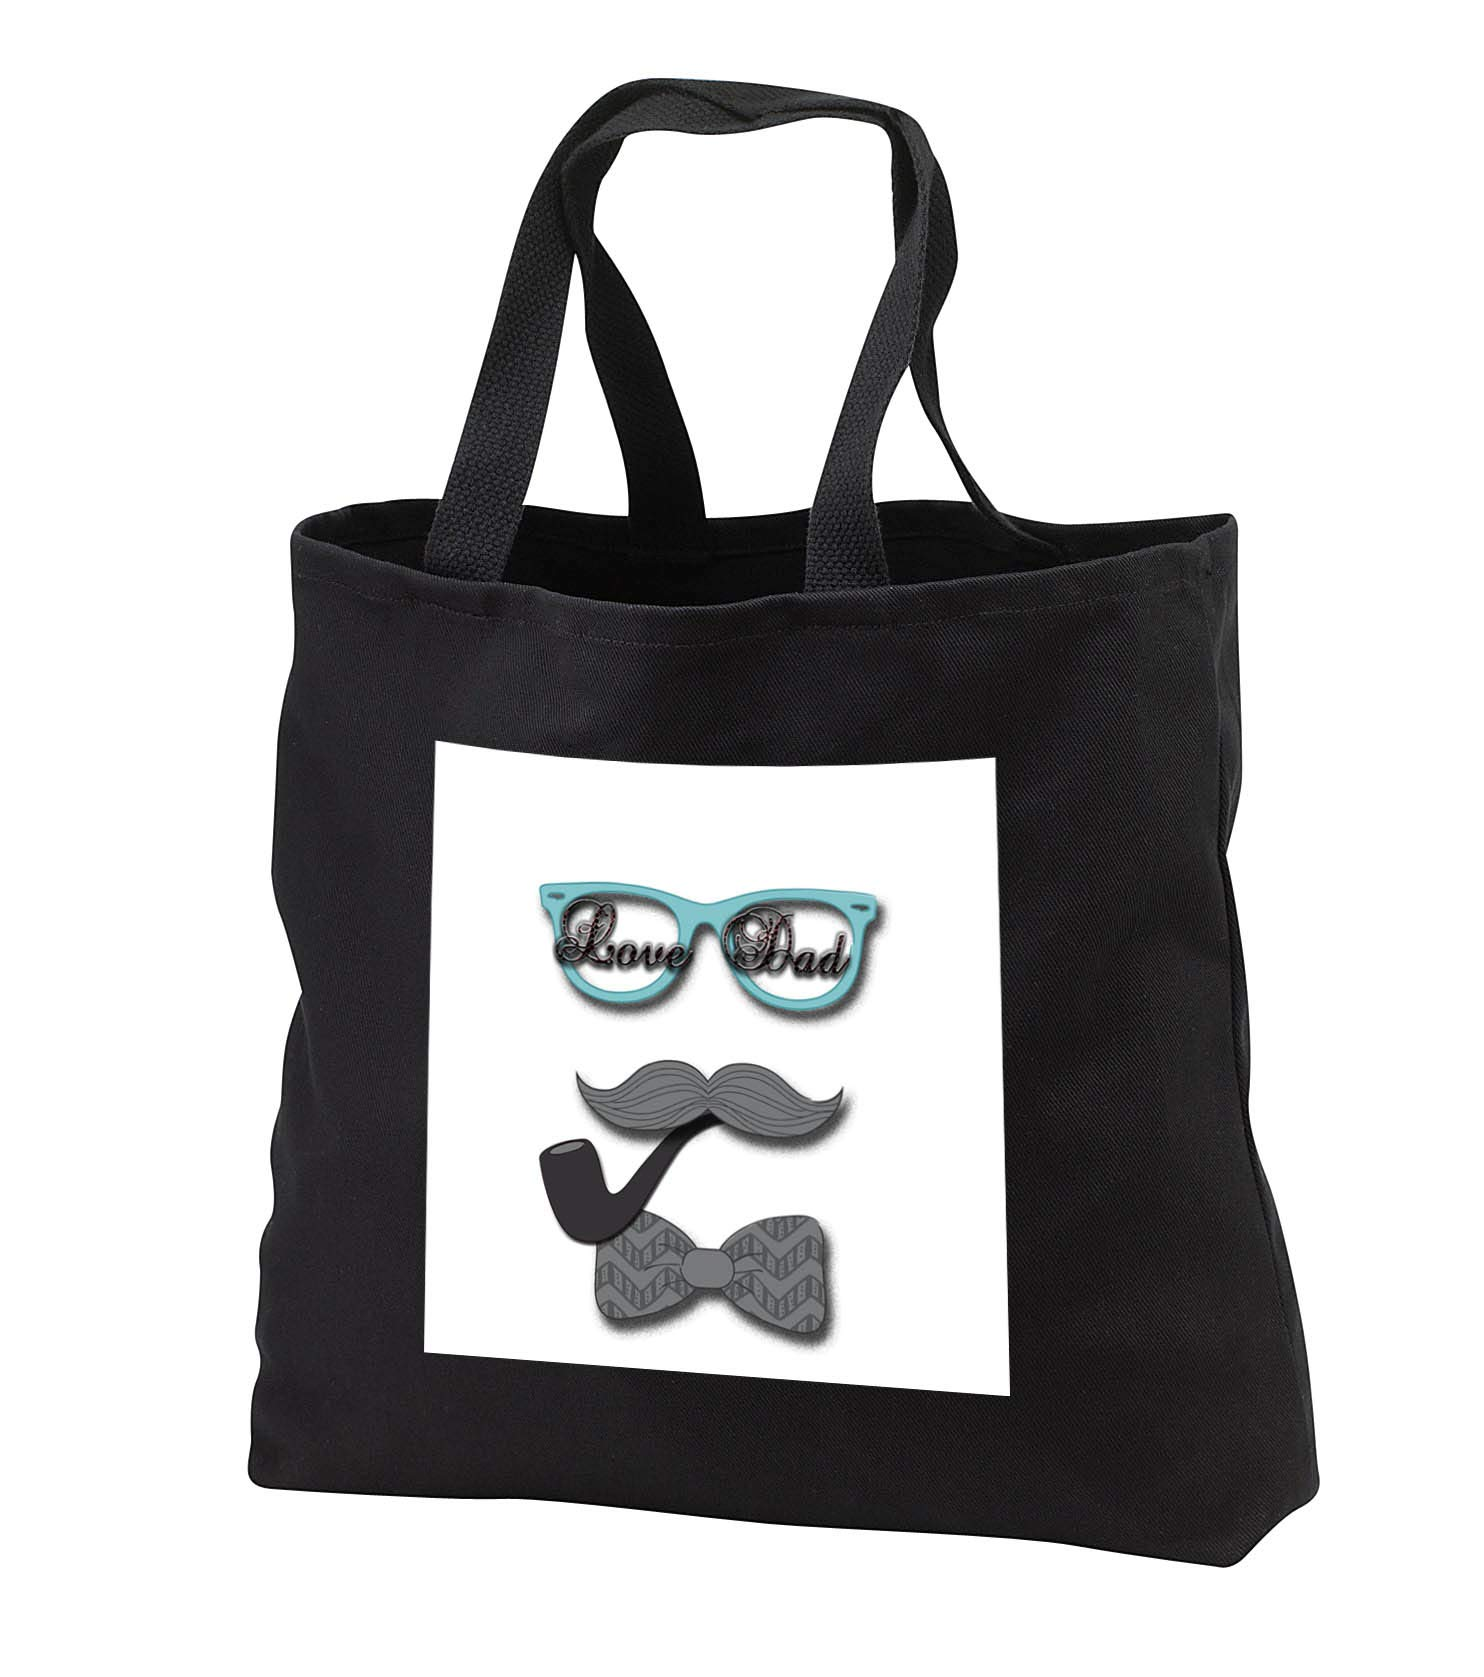 Spiritual Awakenings Cartoon Dads - Fun mustache and glasses with love dad in the lenses - Tote Bags - Black Tote Bag 14w x 14h x 3d (tb_294356_1)